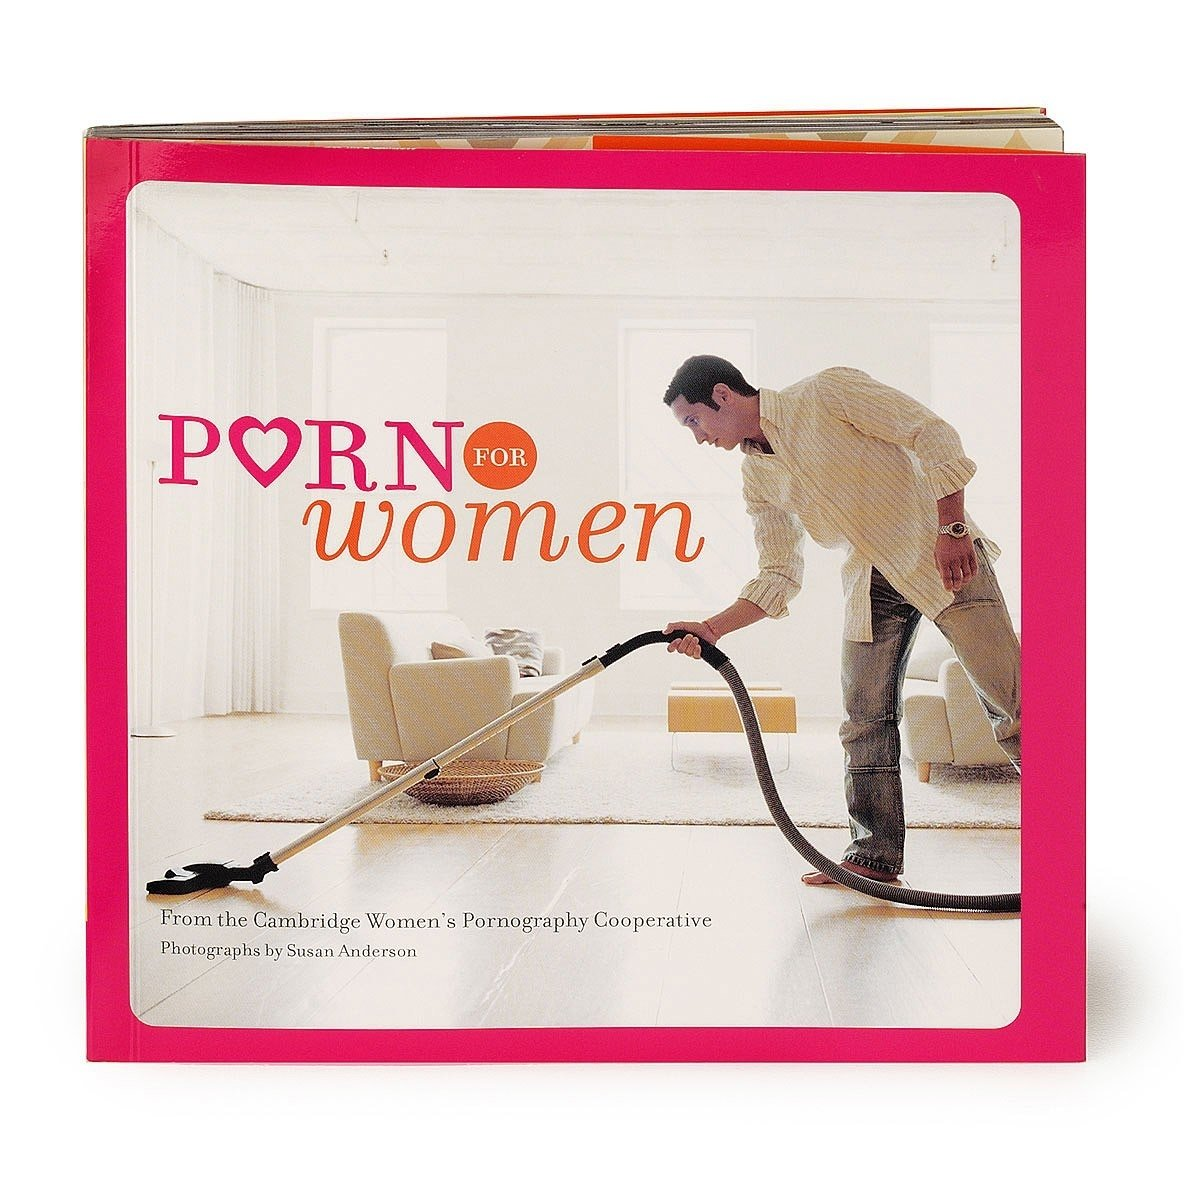 10 Attractive Gift Ideas For The Wife gifts for wife unique gift ideas for wife uncommongoods 1 2021